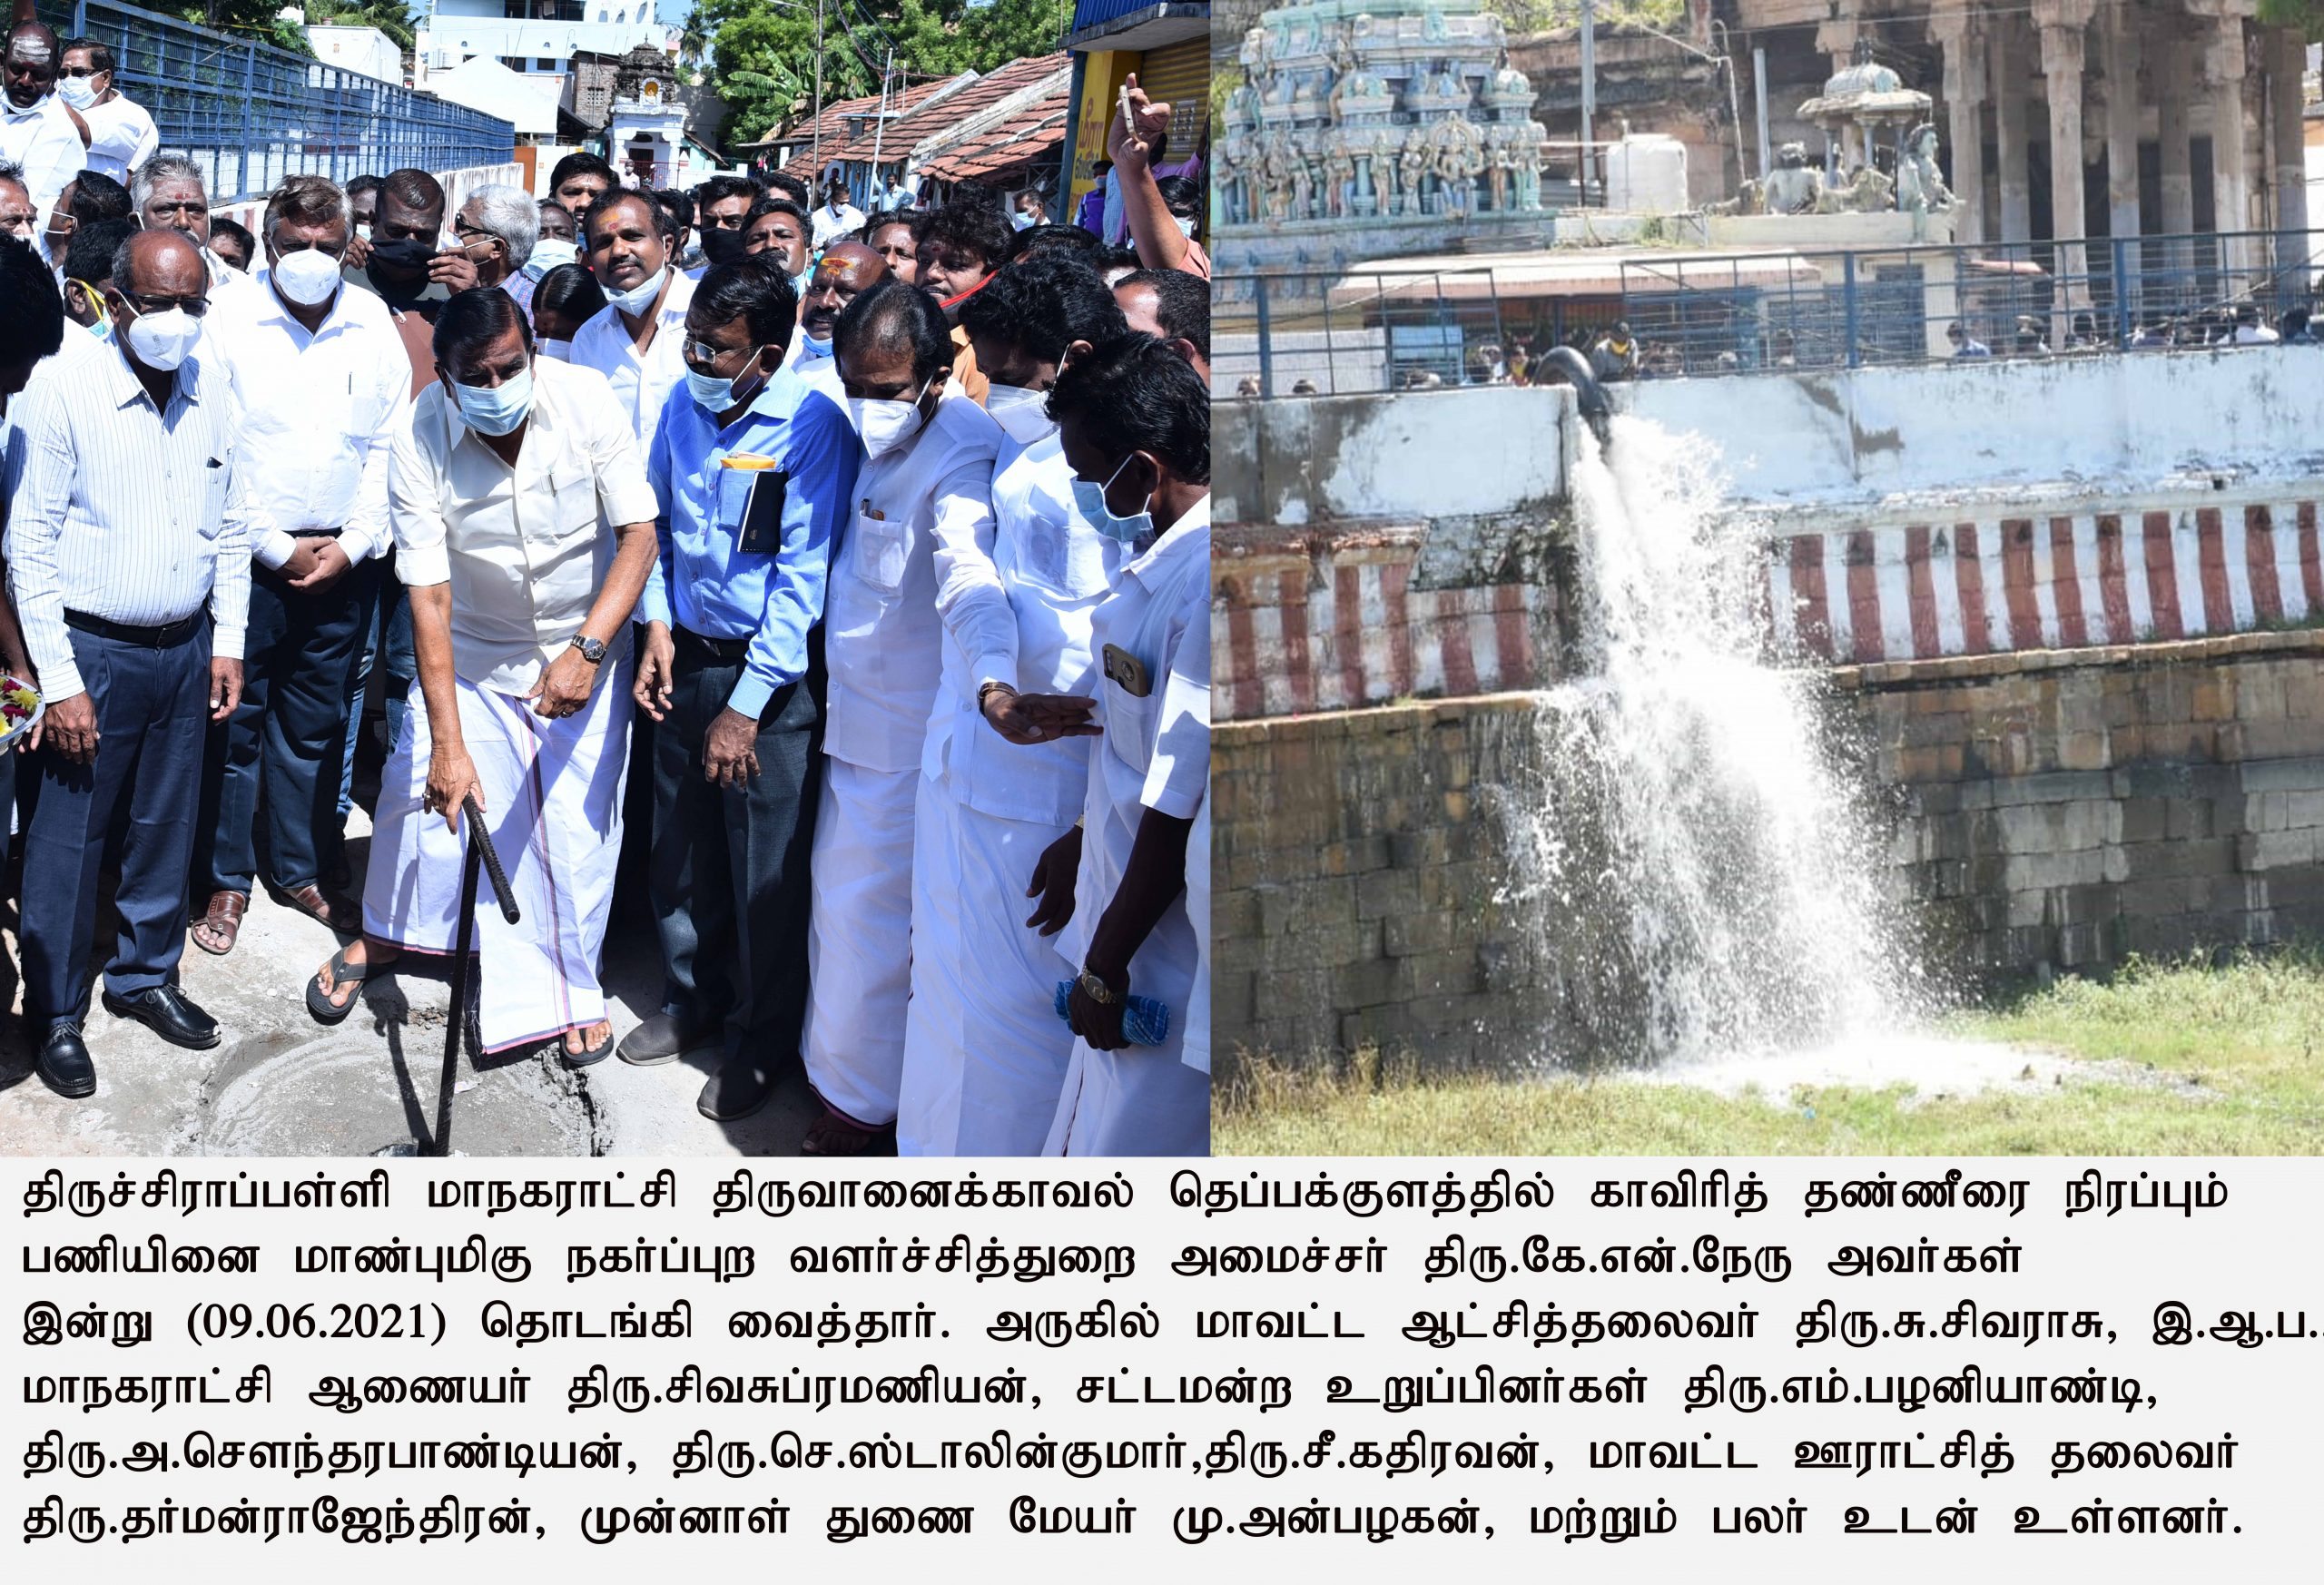 Hon'ble Urban Development Ministers Inspected the Temple Tank Works on 09.06.2021